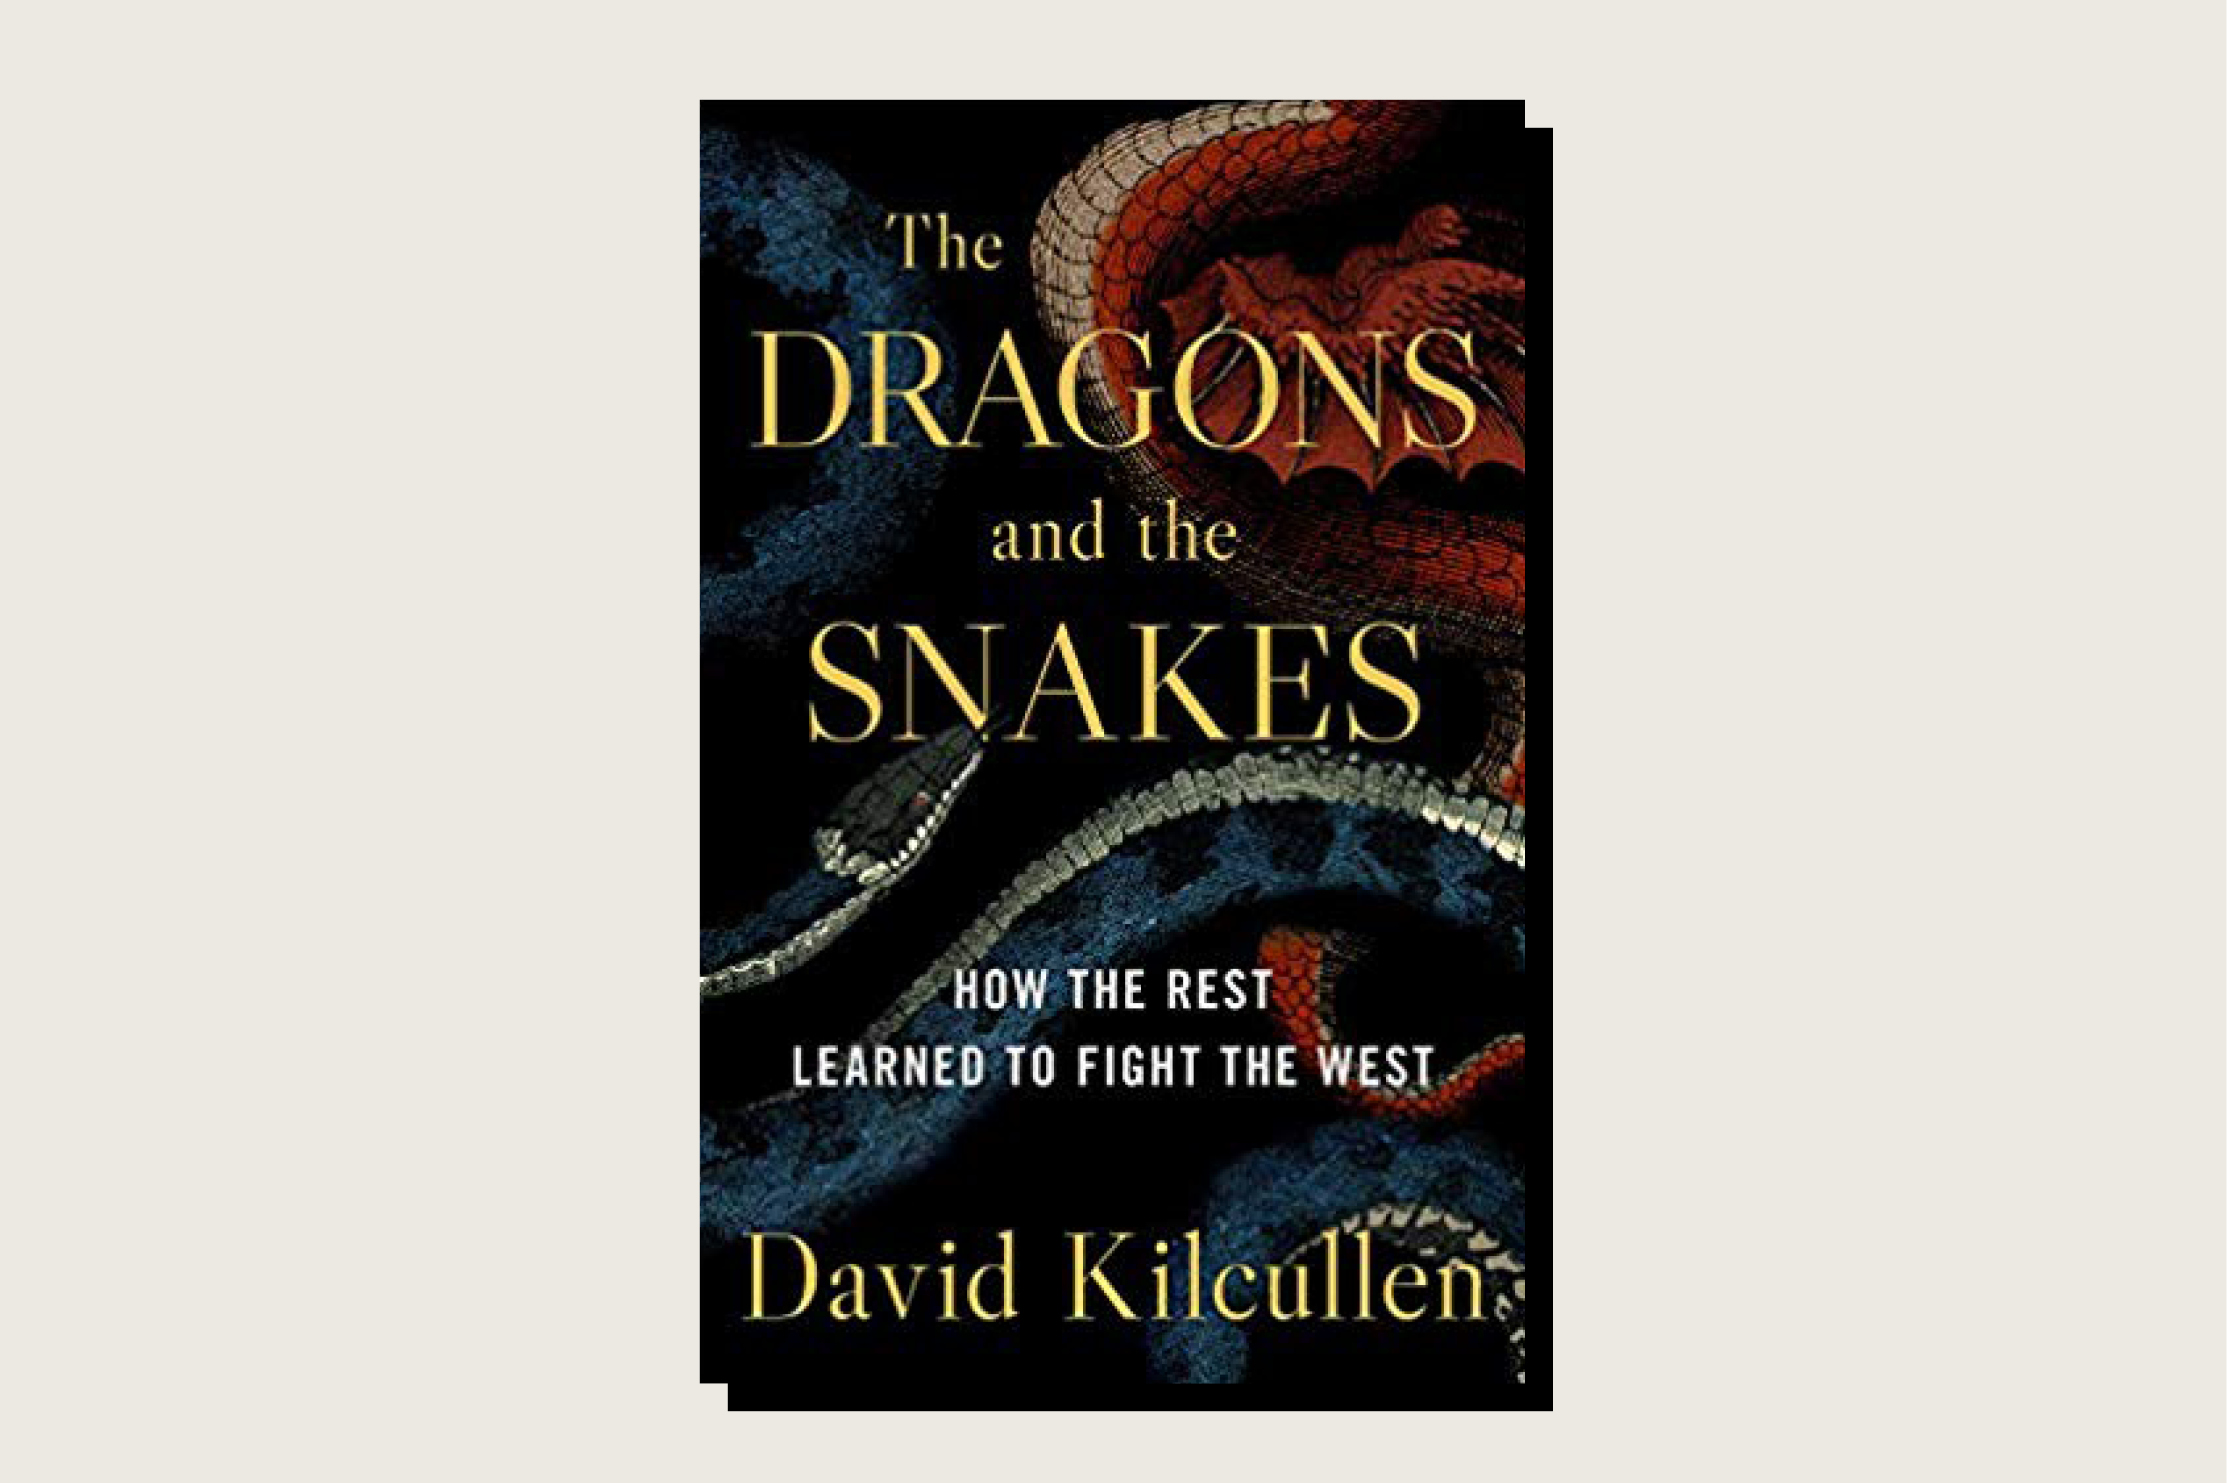 The Dragons and the Snakes, David Kilcullen, Oxford University Press, March 2020.